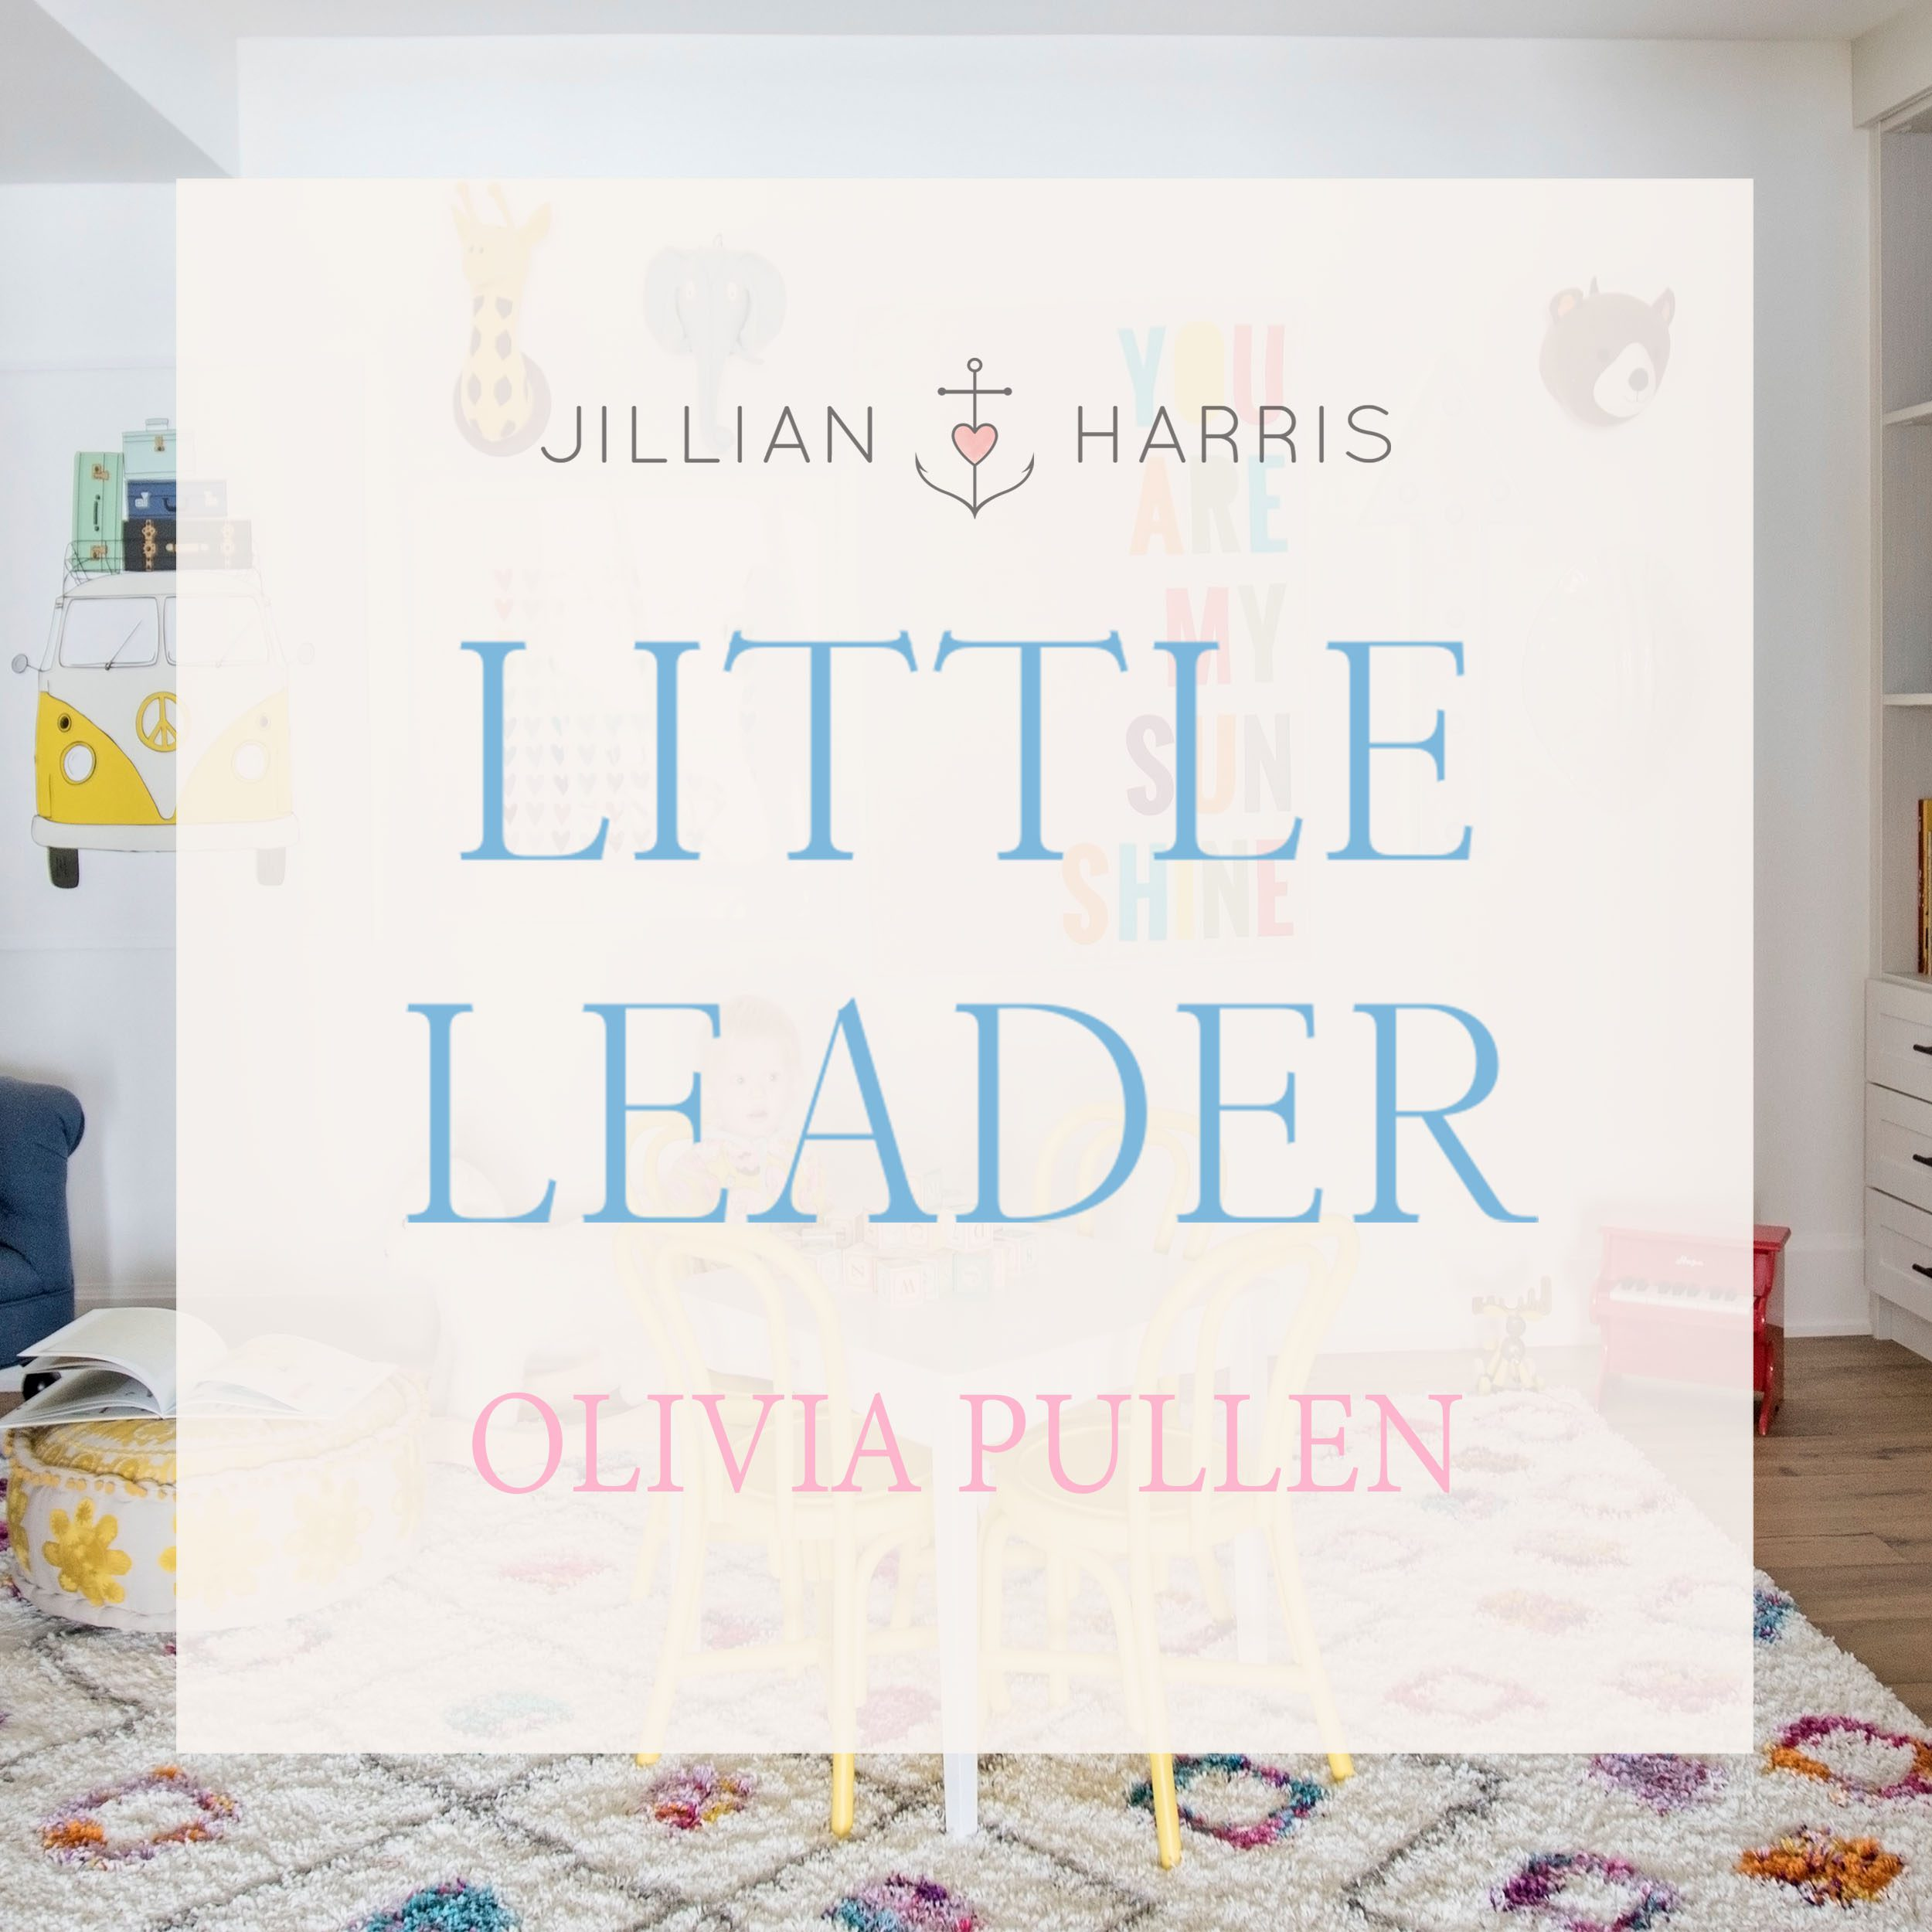 Jiillian Harris Little Leaders Series-Olivia Pullen